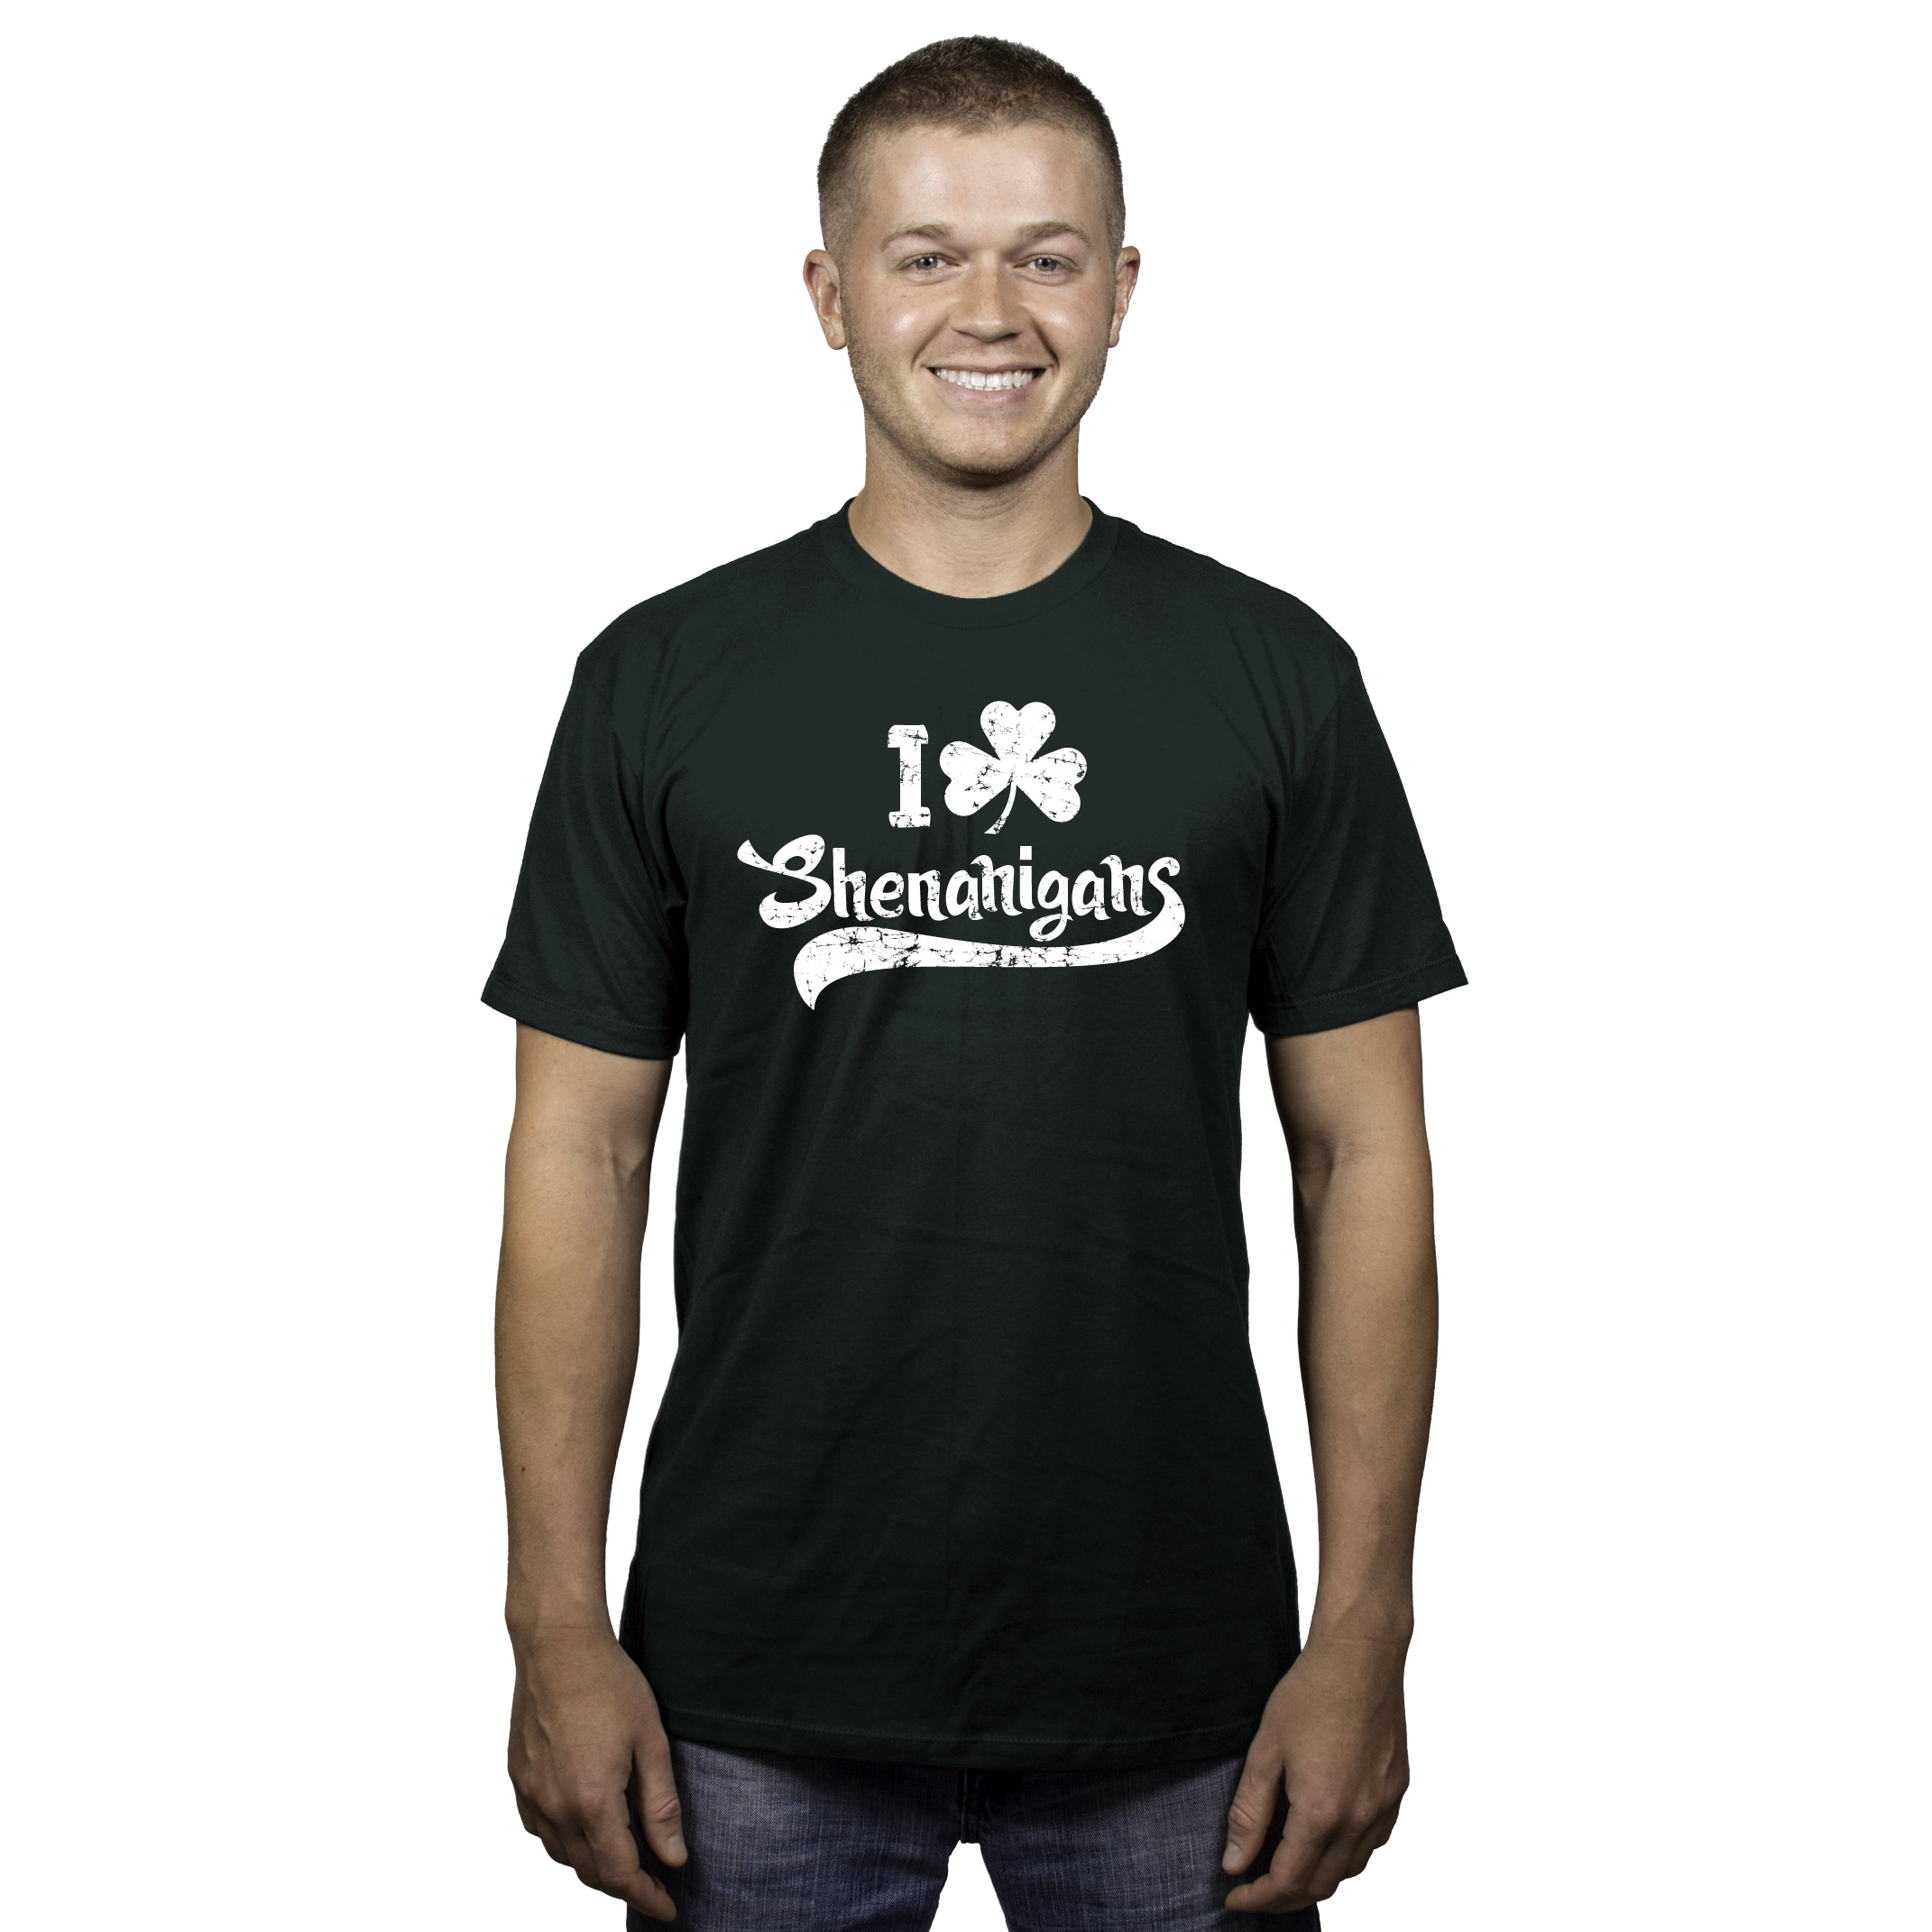 713a5713 Shop Mens I Clover Shenanigans Funny Irish St Patricks Day T shirt (Forest  Green) - Free Shipping On Orders Over $45 - Overstock - 16182787